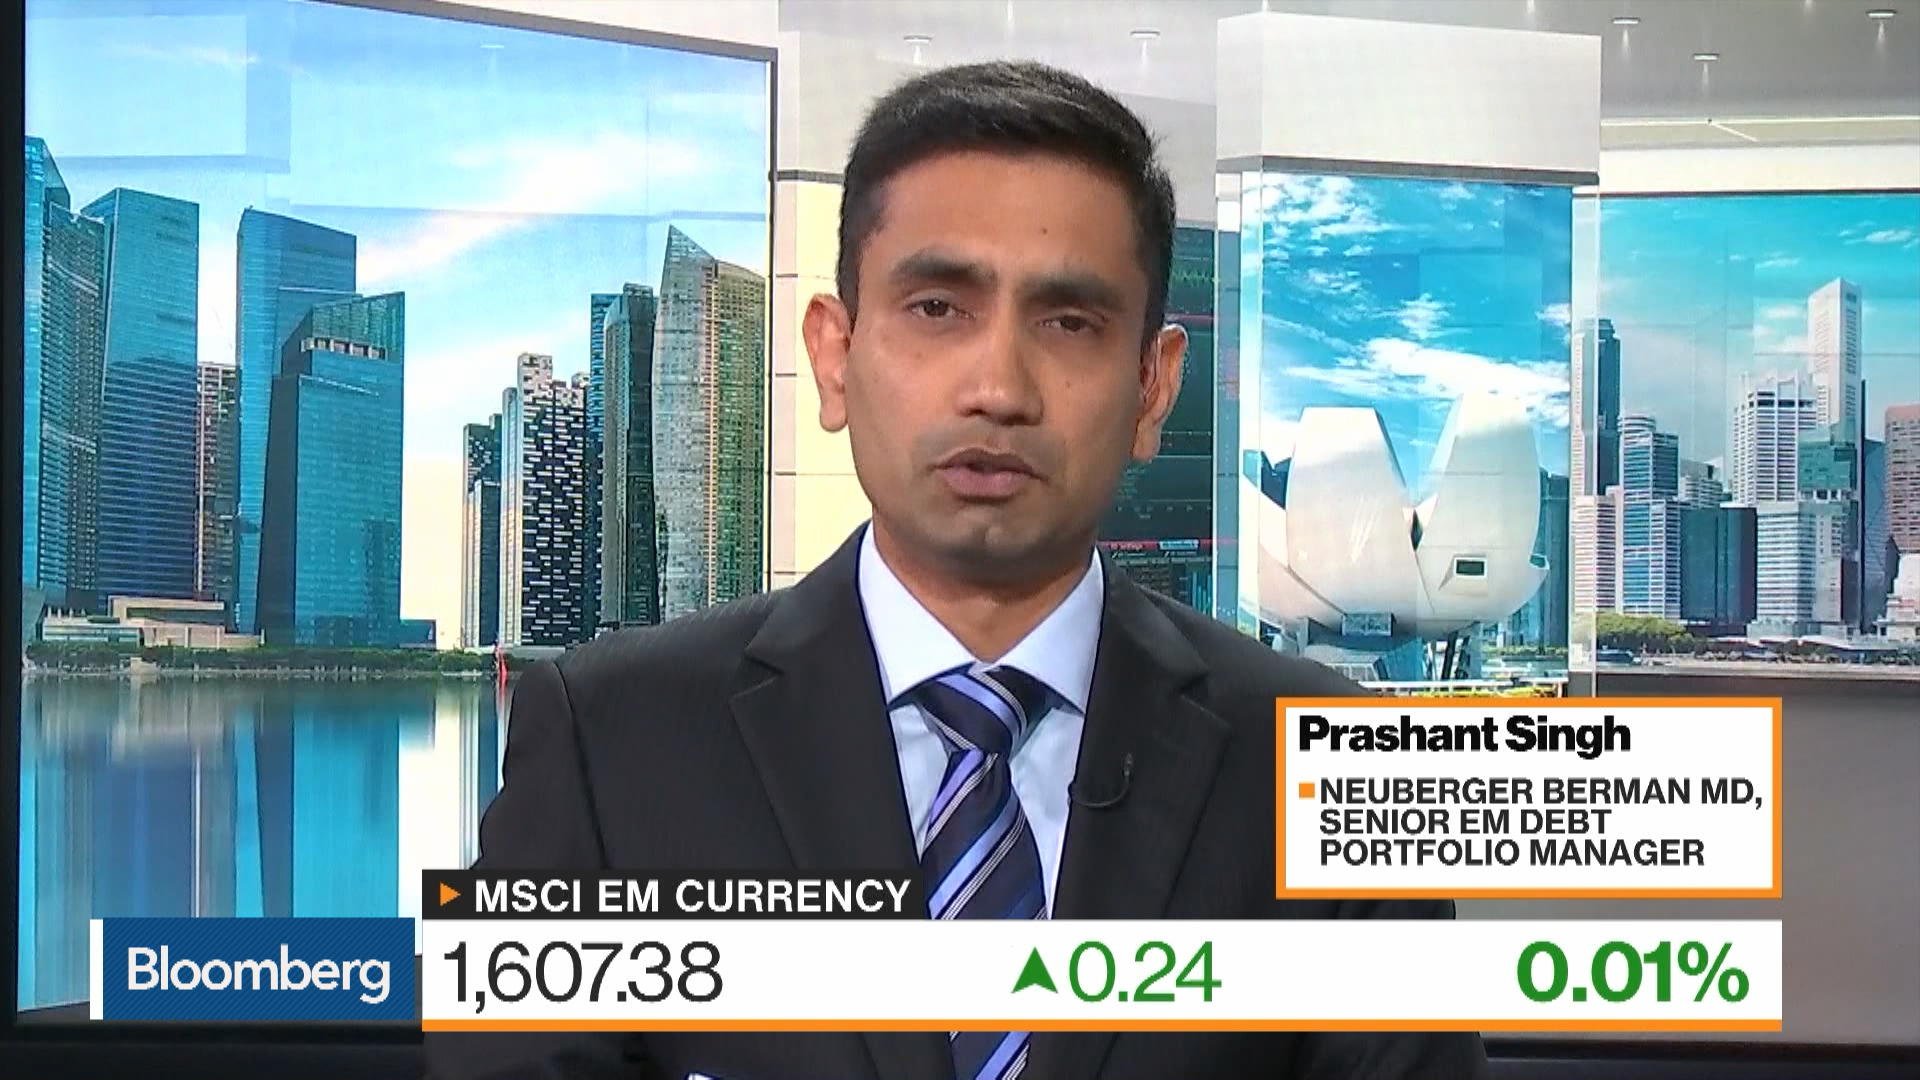 Neuberger Berman Senior Emerging Market Debt Portfolio Manager Prashant Singh on Bond Market